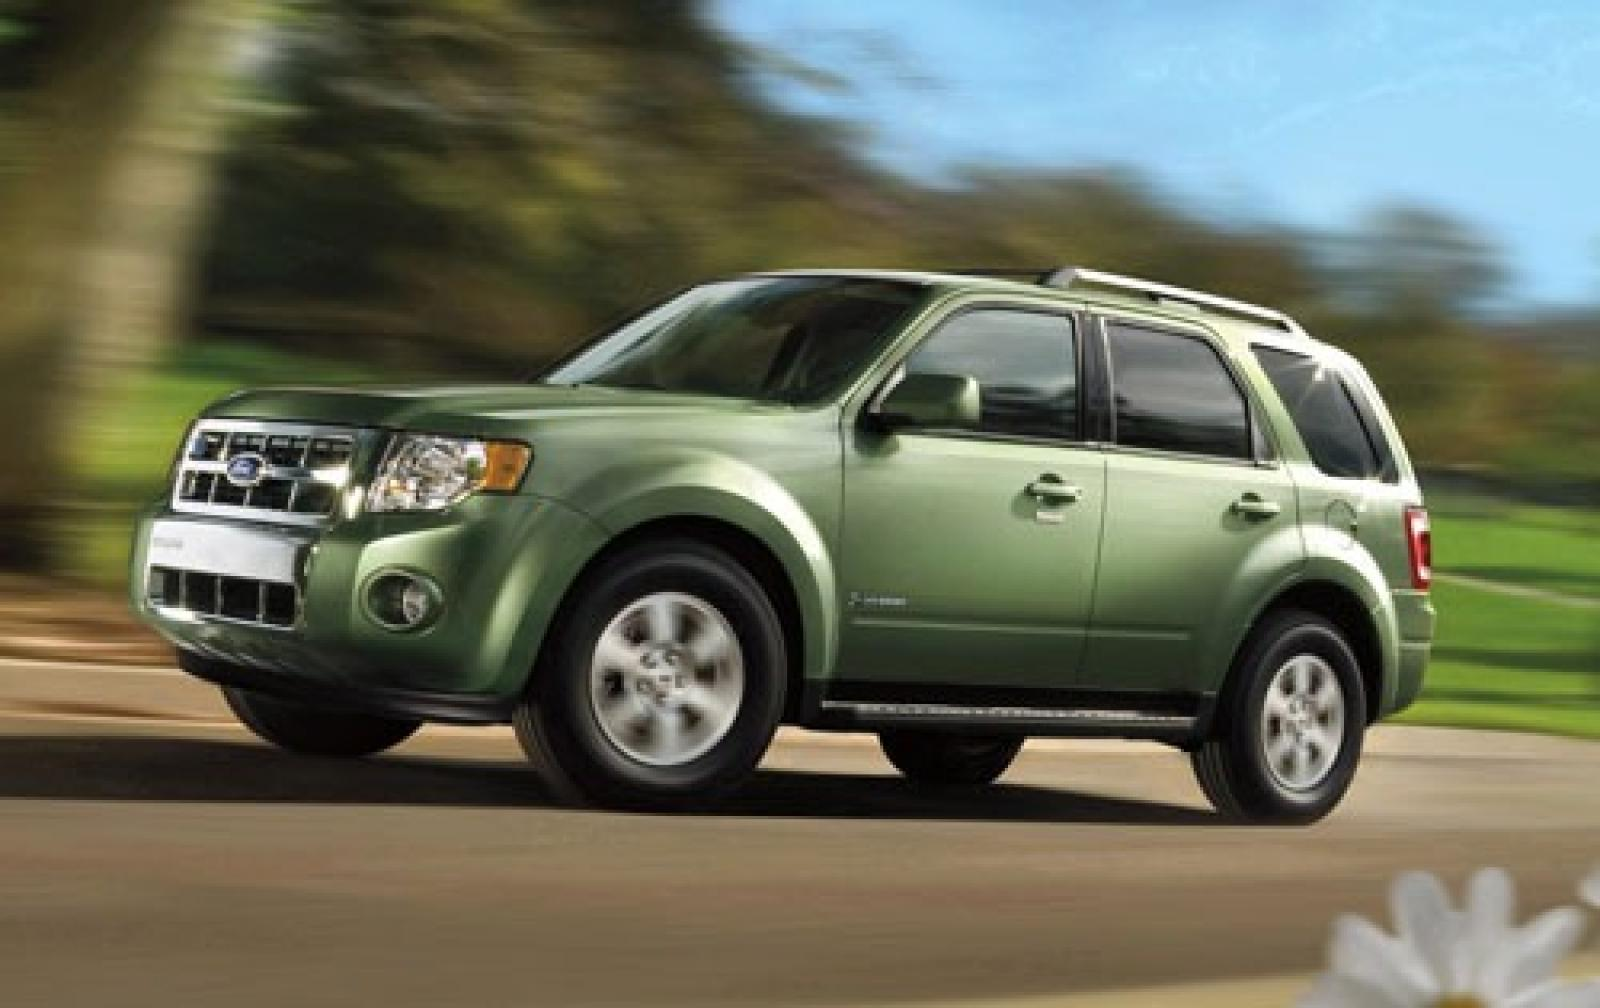 2010 ford escape hybrid information and photos zombiedrive rh zombdrive com 2012 Ford Escape Hybrid 2012 Ford Escape Hybrid